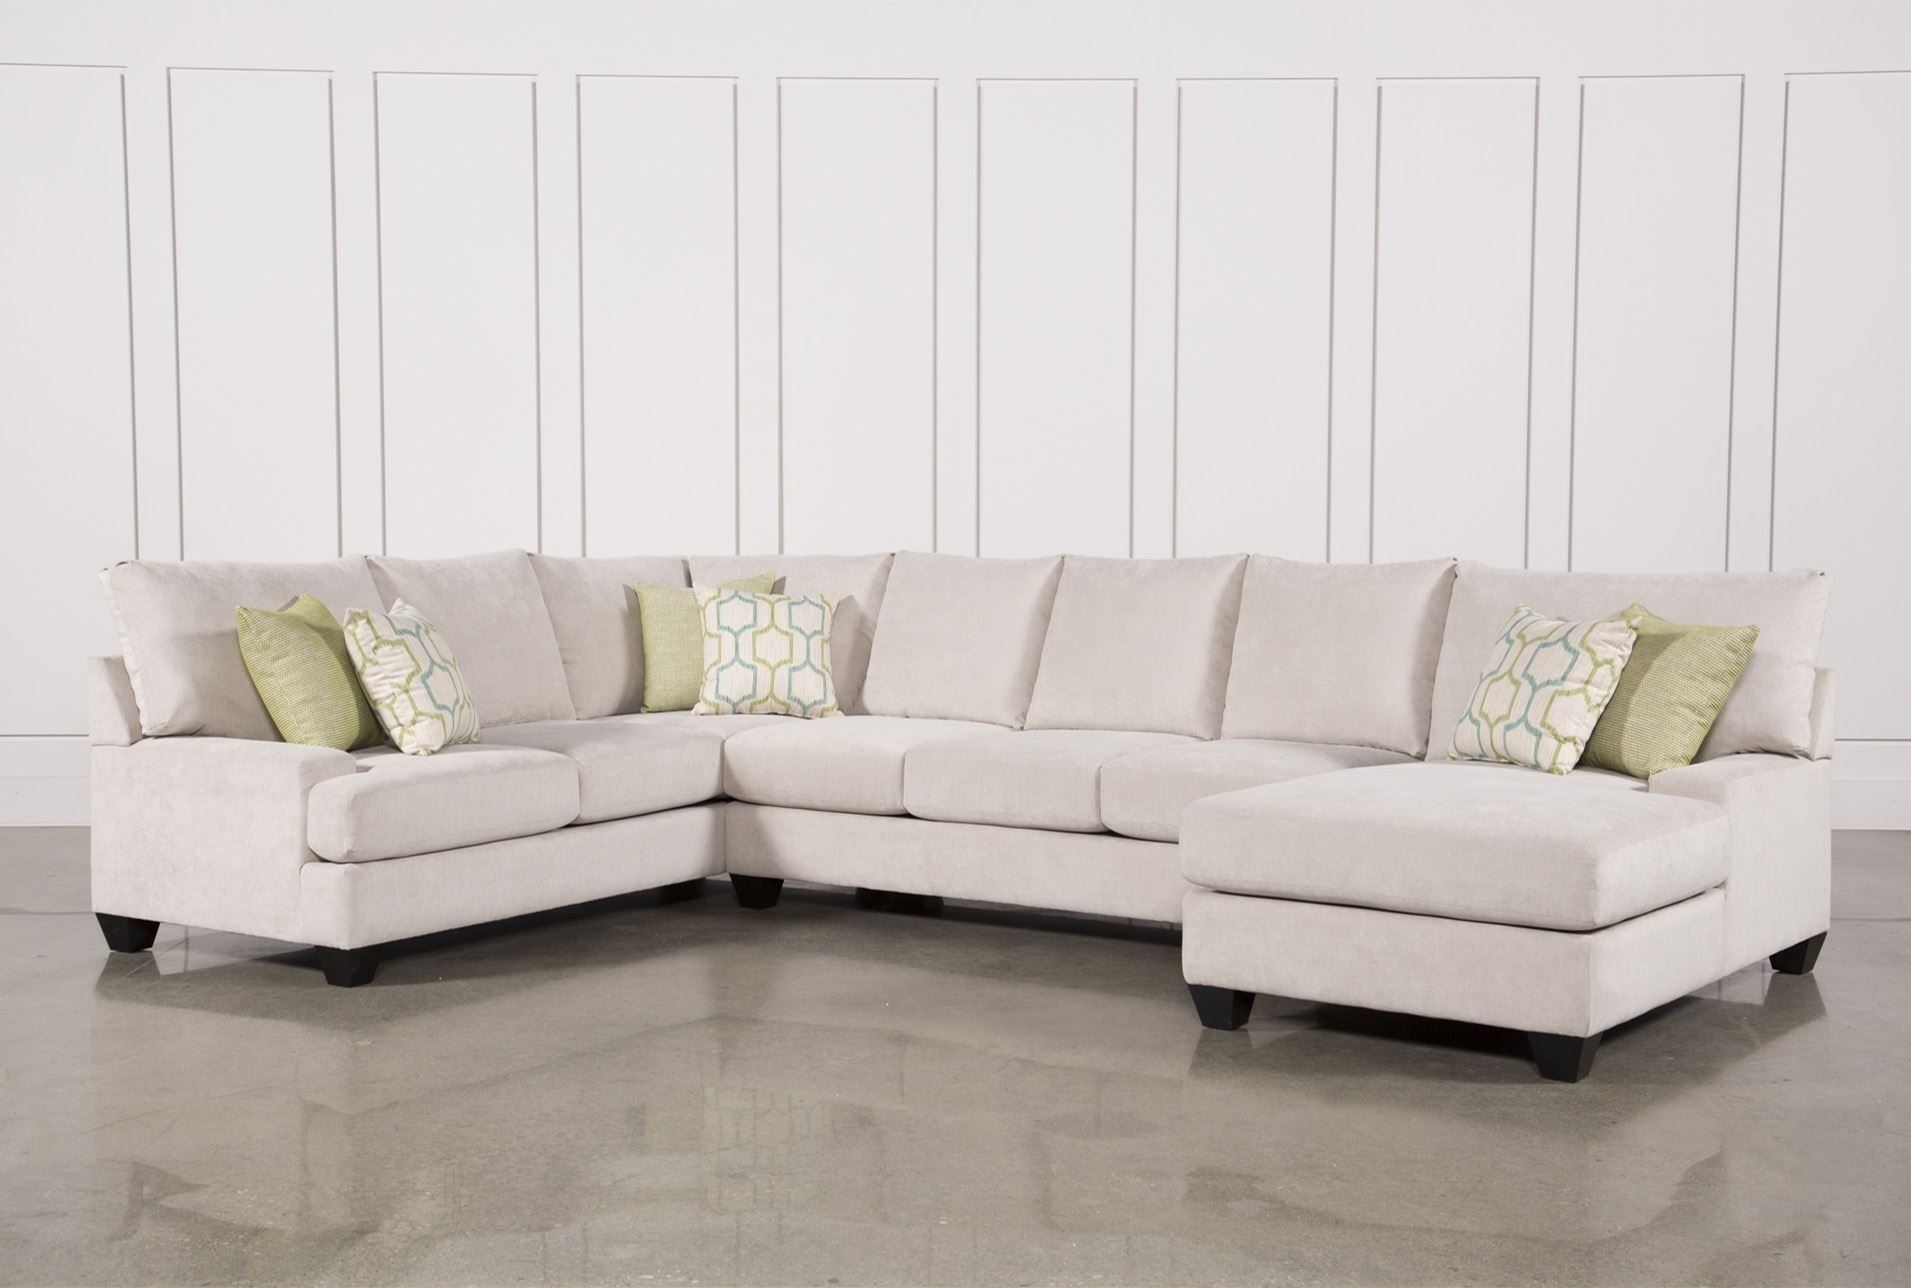 Harper Foam 3 Piece Sectional W/raf Chaise | Family Room | Pinterest with regard to Mesa Foam 2 Piece Sectionals (Image 11 of 30)